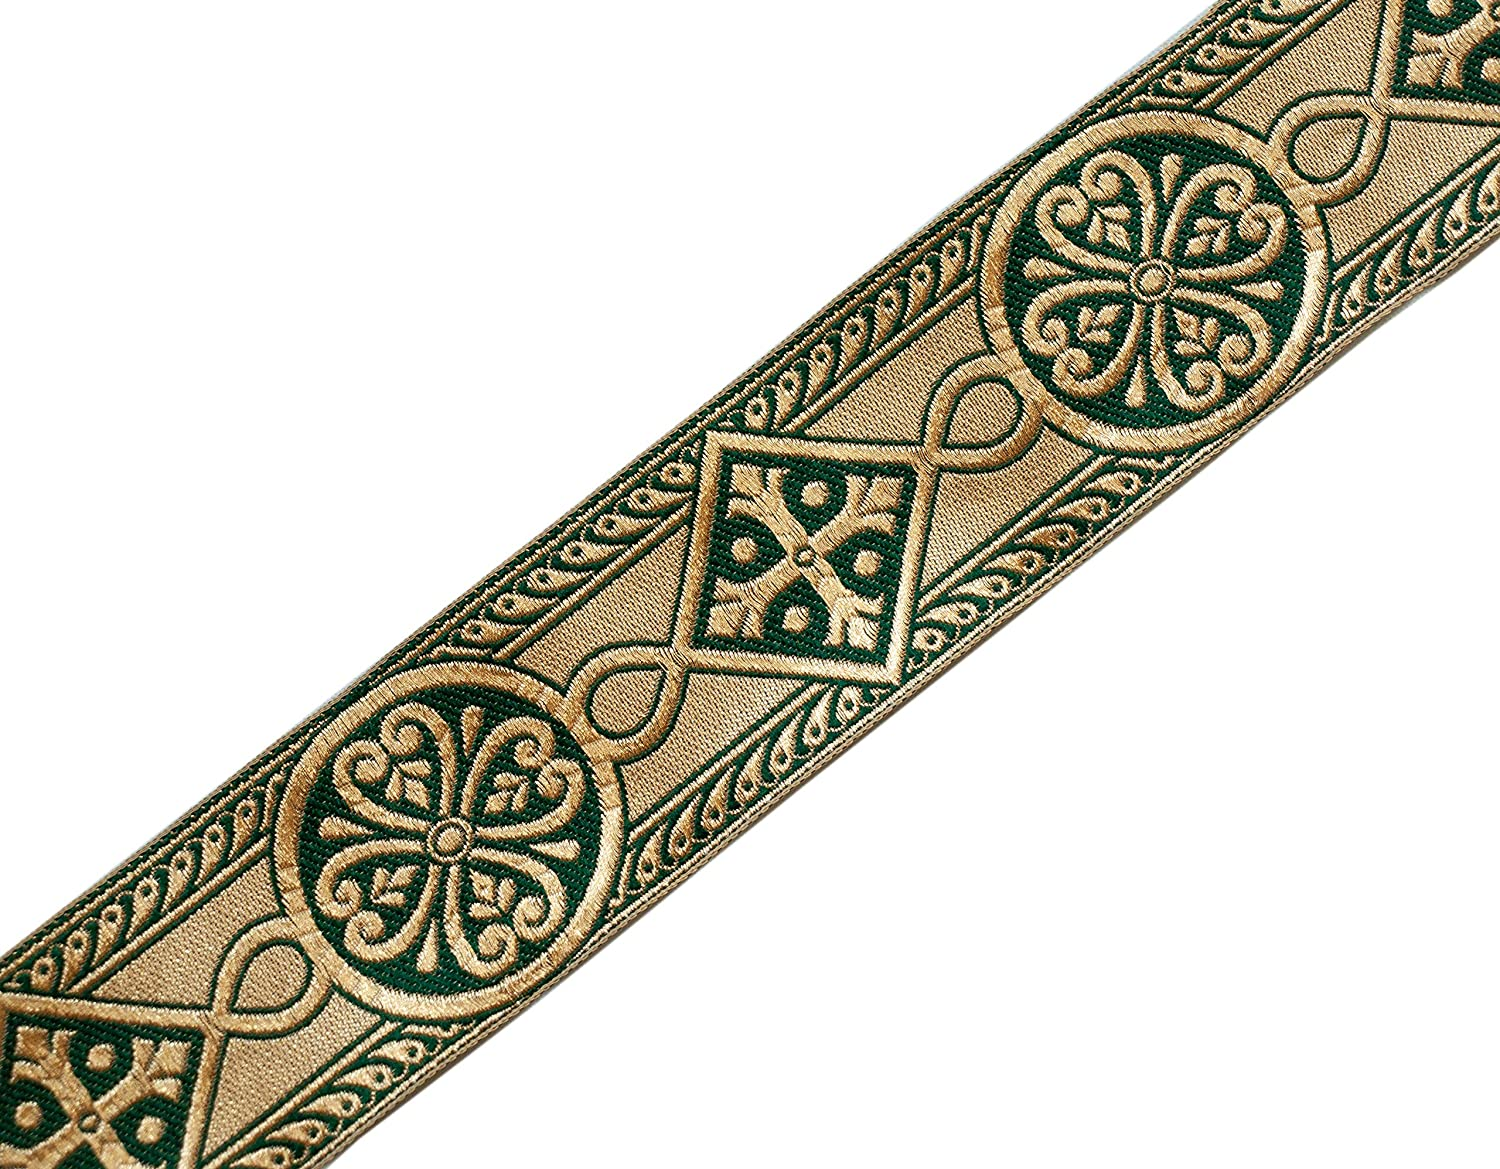 2.5 Wide Forest Green /& Gold Chasuble Medieval Church Vestment Trim 4 Yds DIY